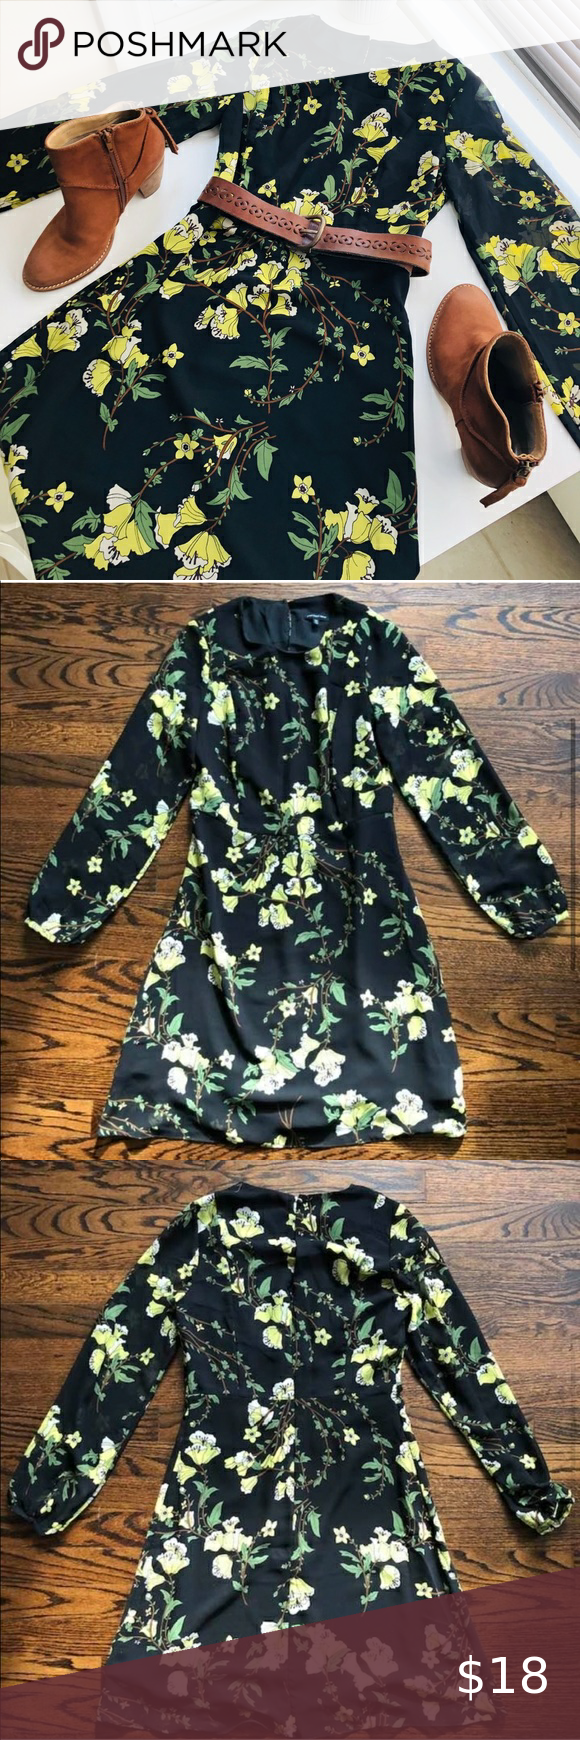 Flowy Floral Spring Dress Black Yellow Flowers Xs Never Worn Very Cute Spring Long Sleeve Dress Fall Floral Dress Spring Floral Dress Long Sleeve Dresses Fall [ 1740 x 580 Pixel ]